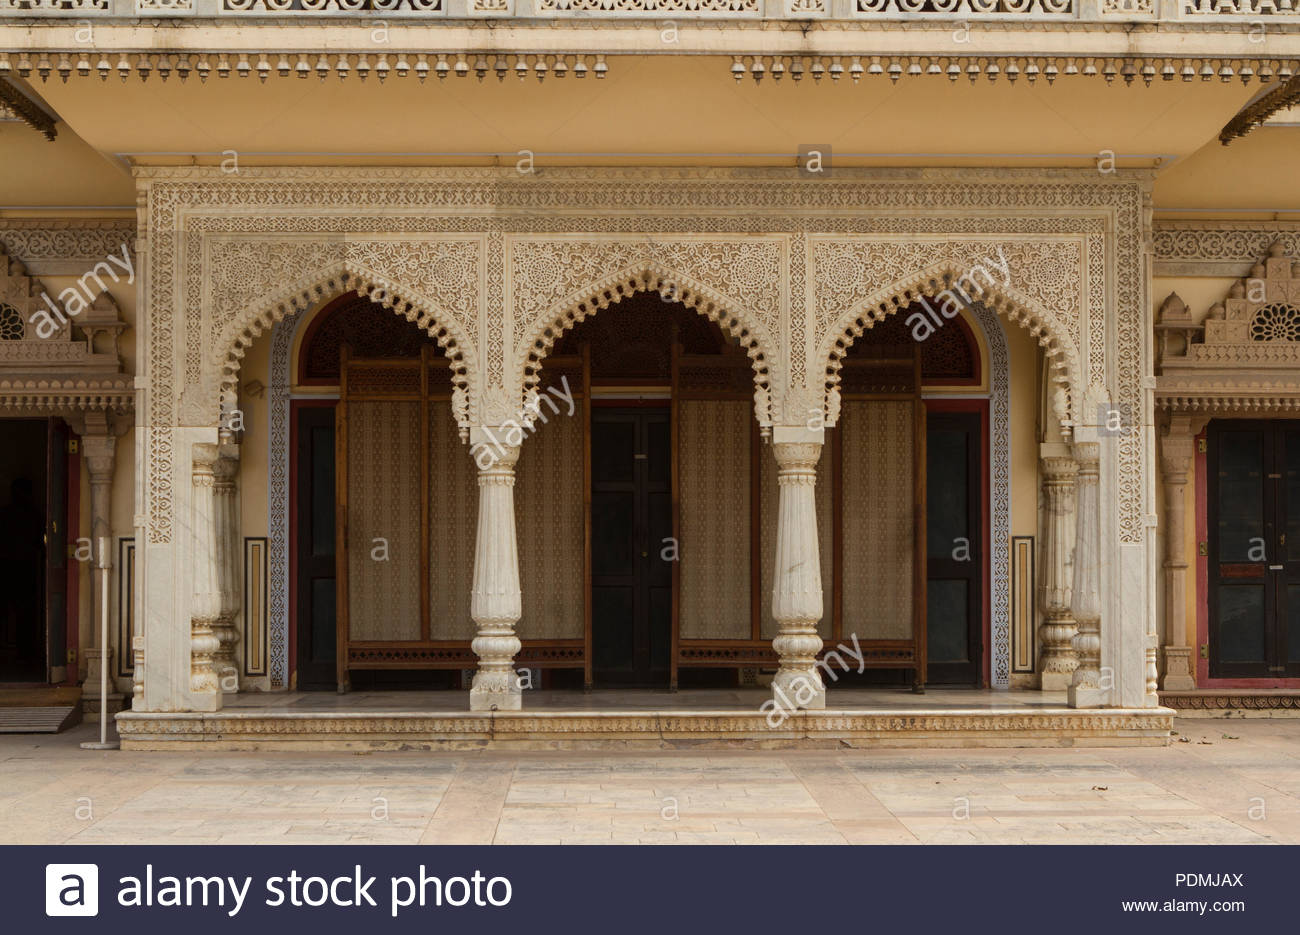 This complex was the seat of the Maharaja of Jaipur, the head of the Kachwaha Rajput clan. The Chandra Mahal palace now houses a museum but the greate - Stock Image